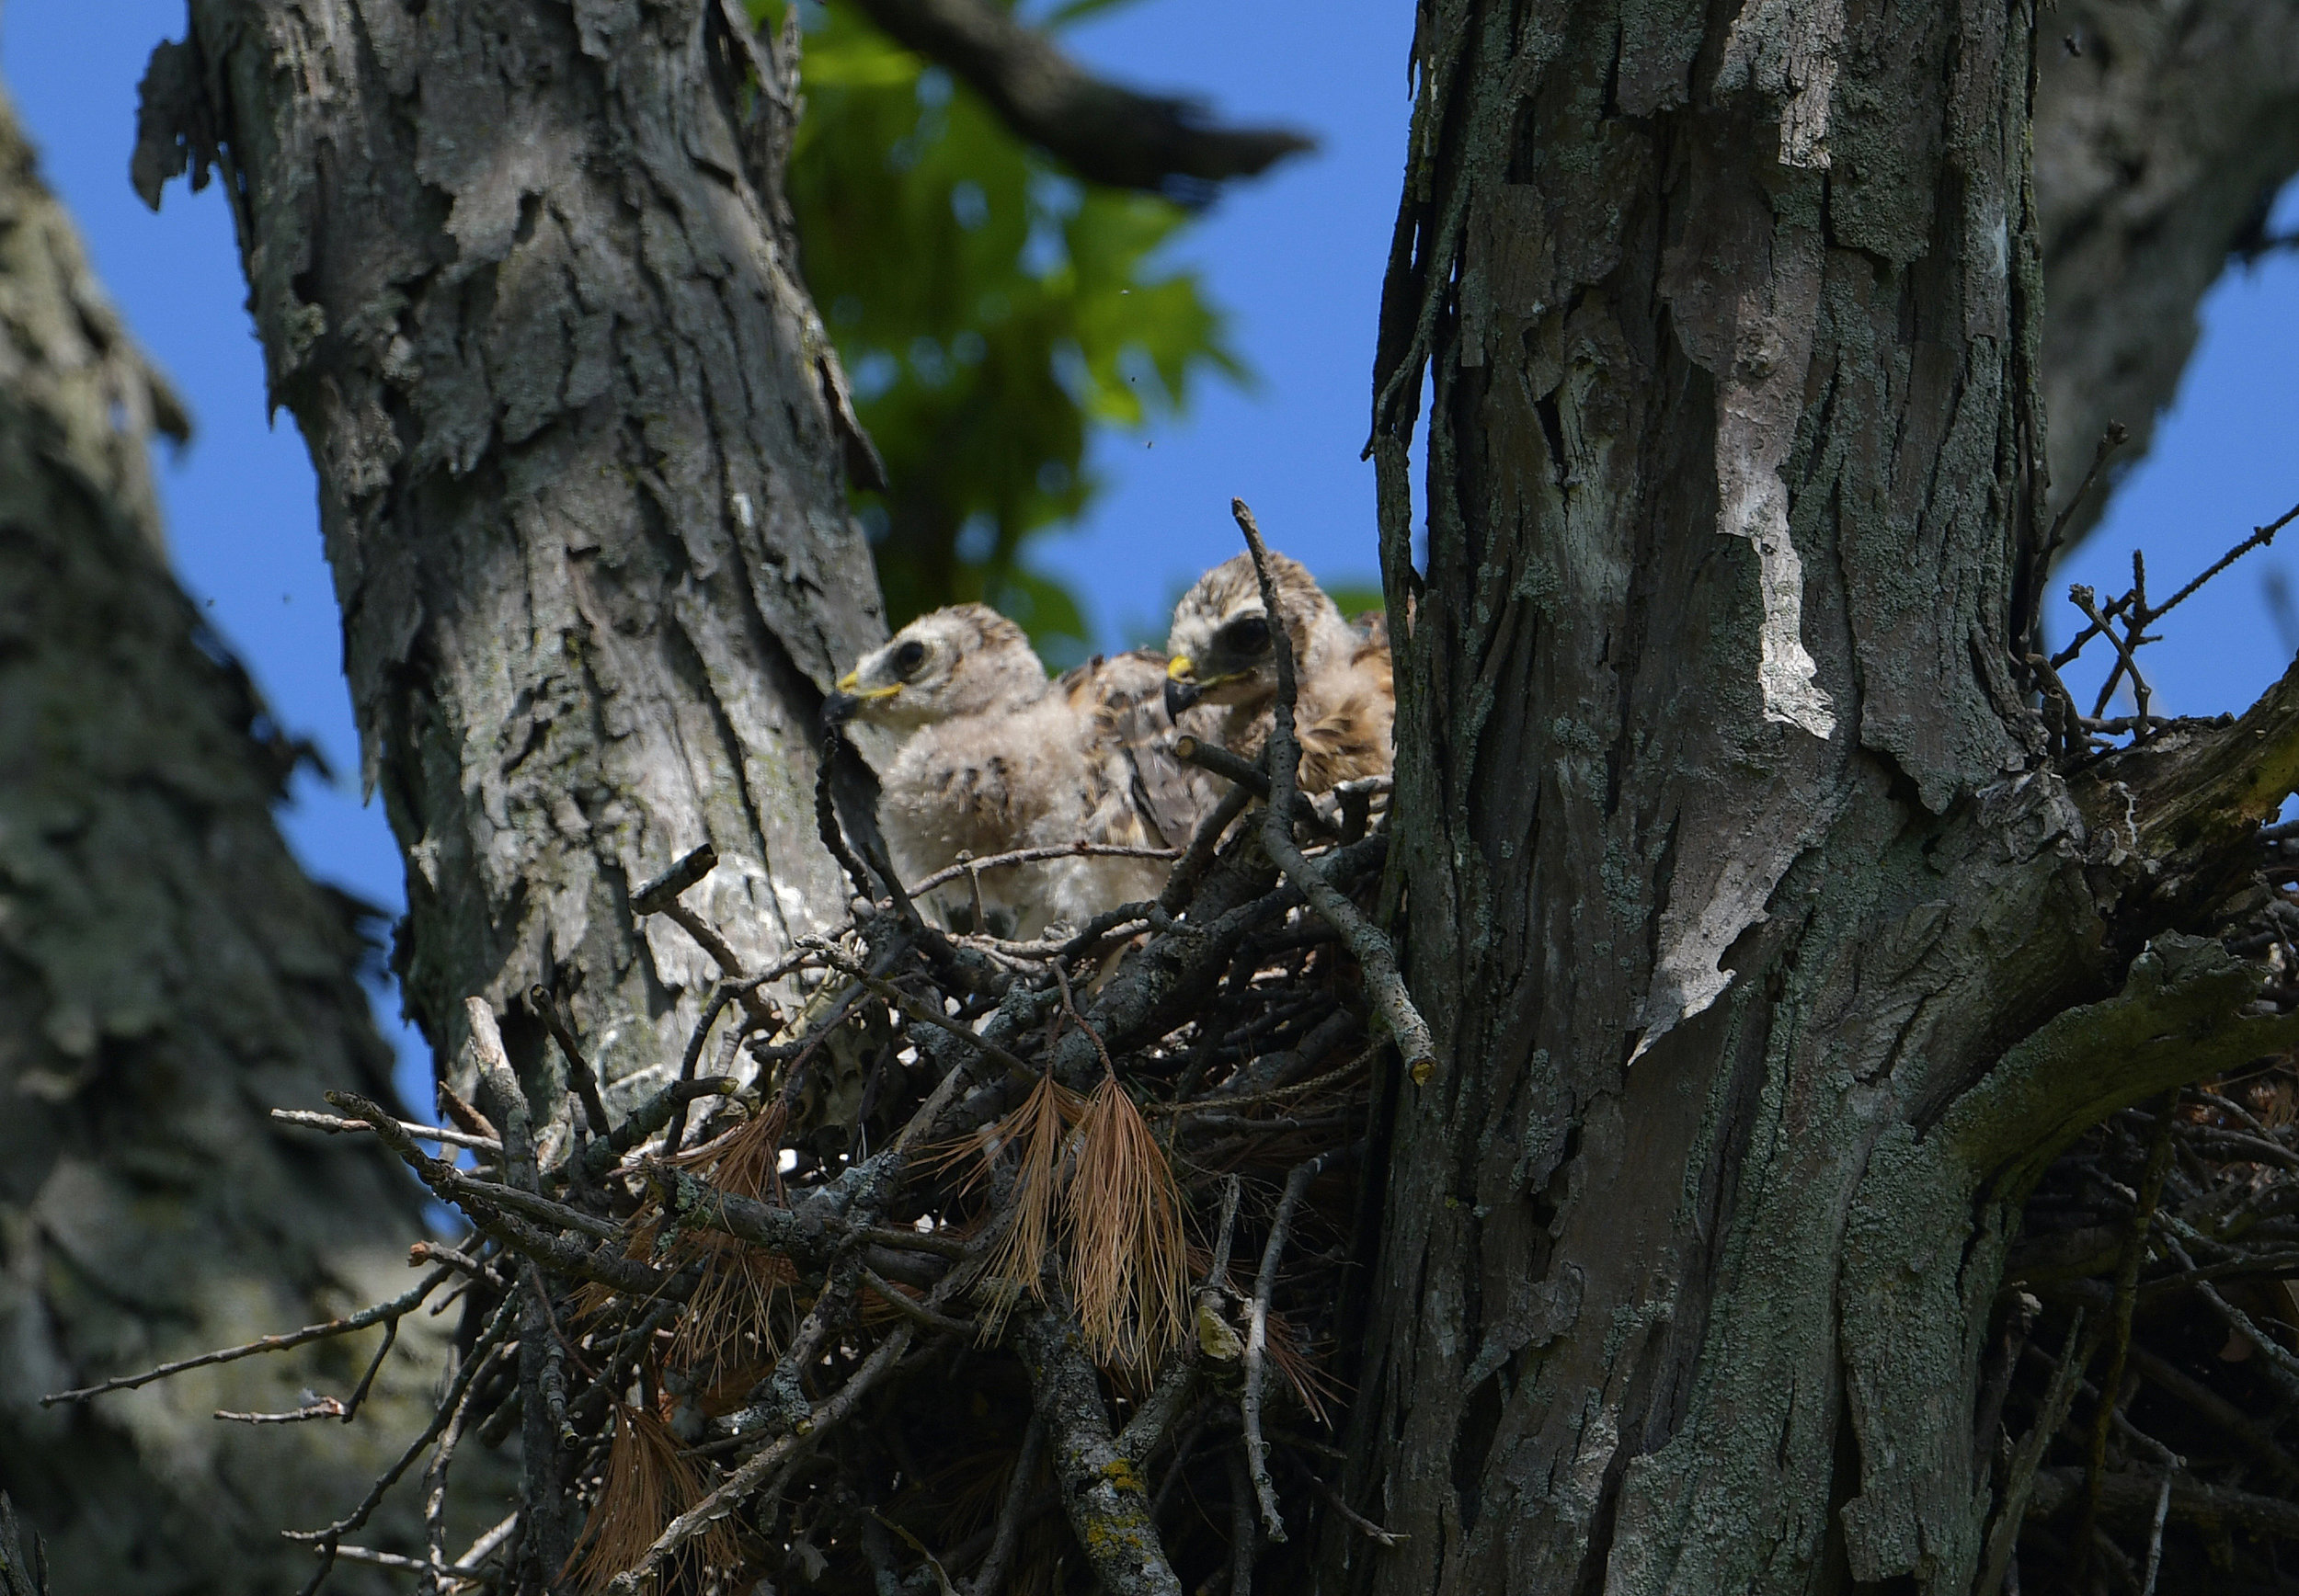 Red-shouldered hawk chicks in the nest. Photo by David Rihn